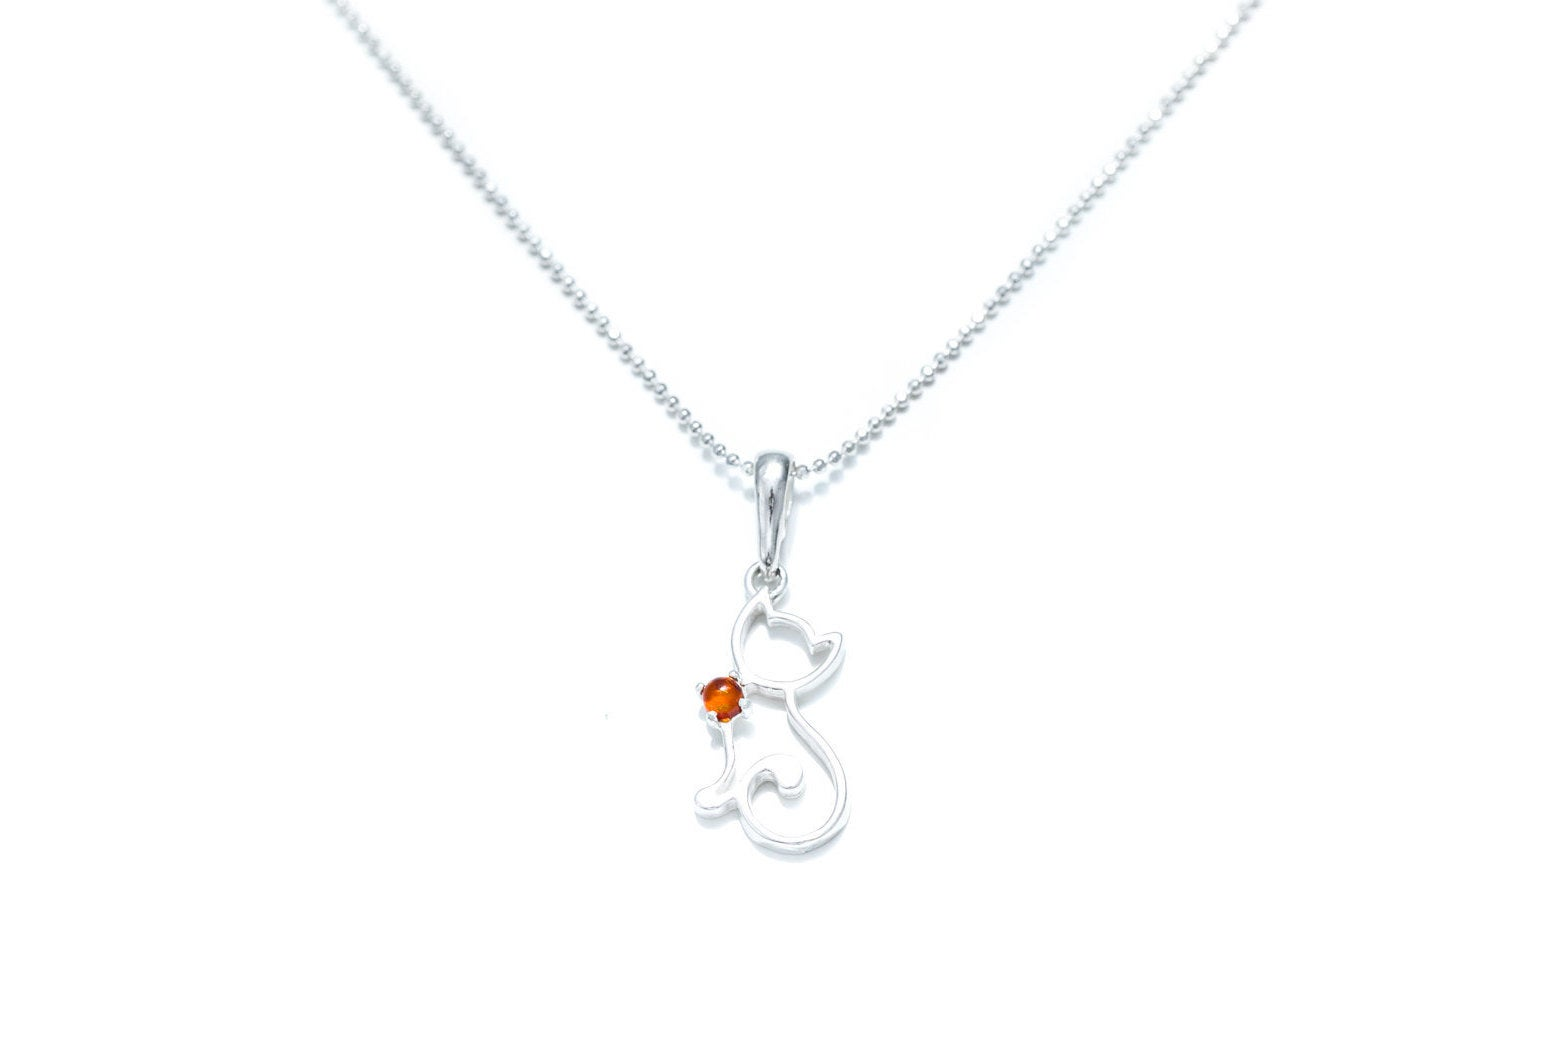 Dainty Cat Charm Necklace